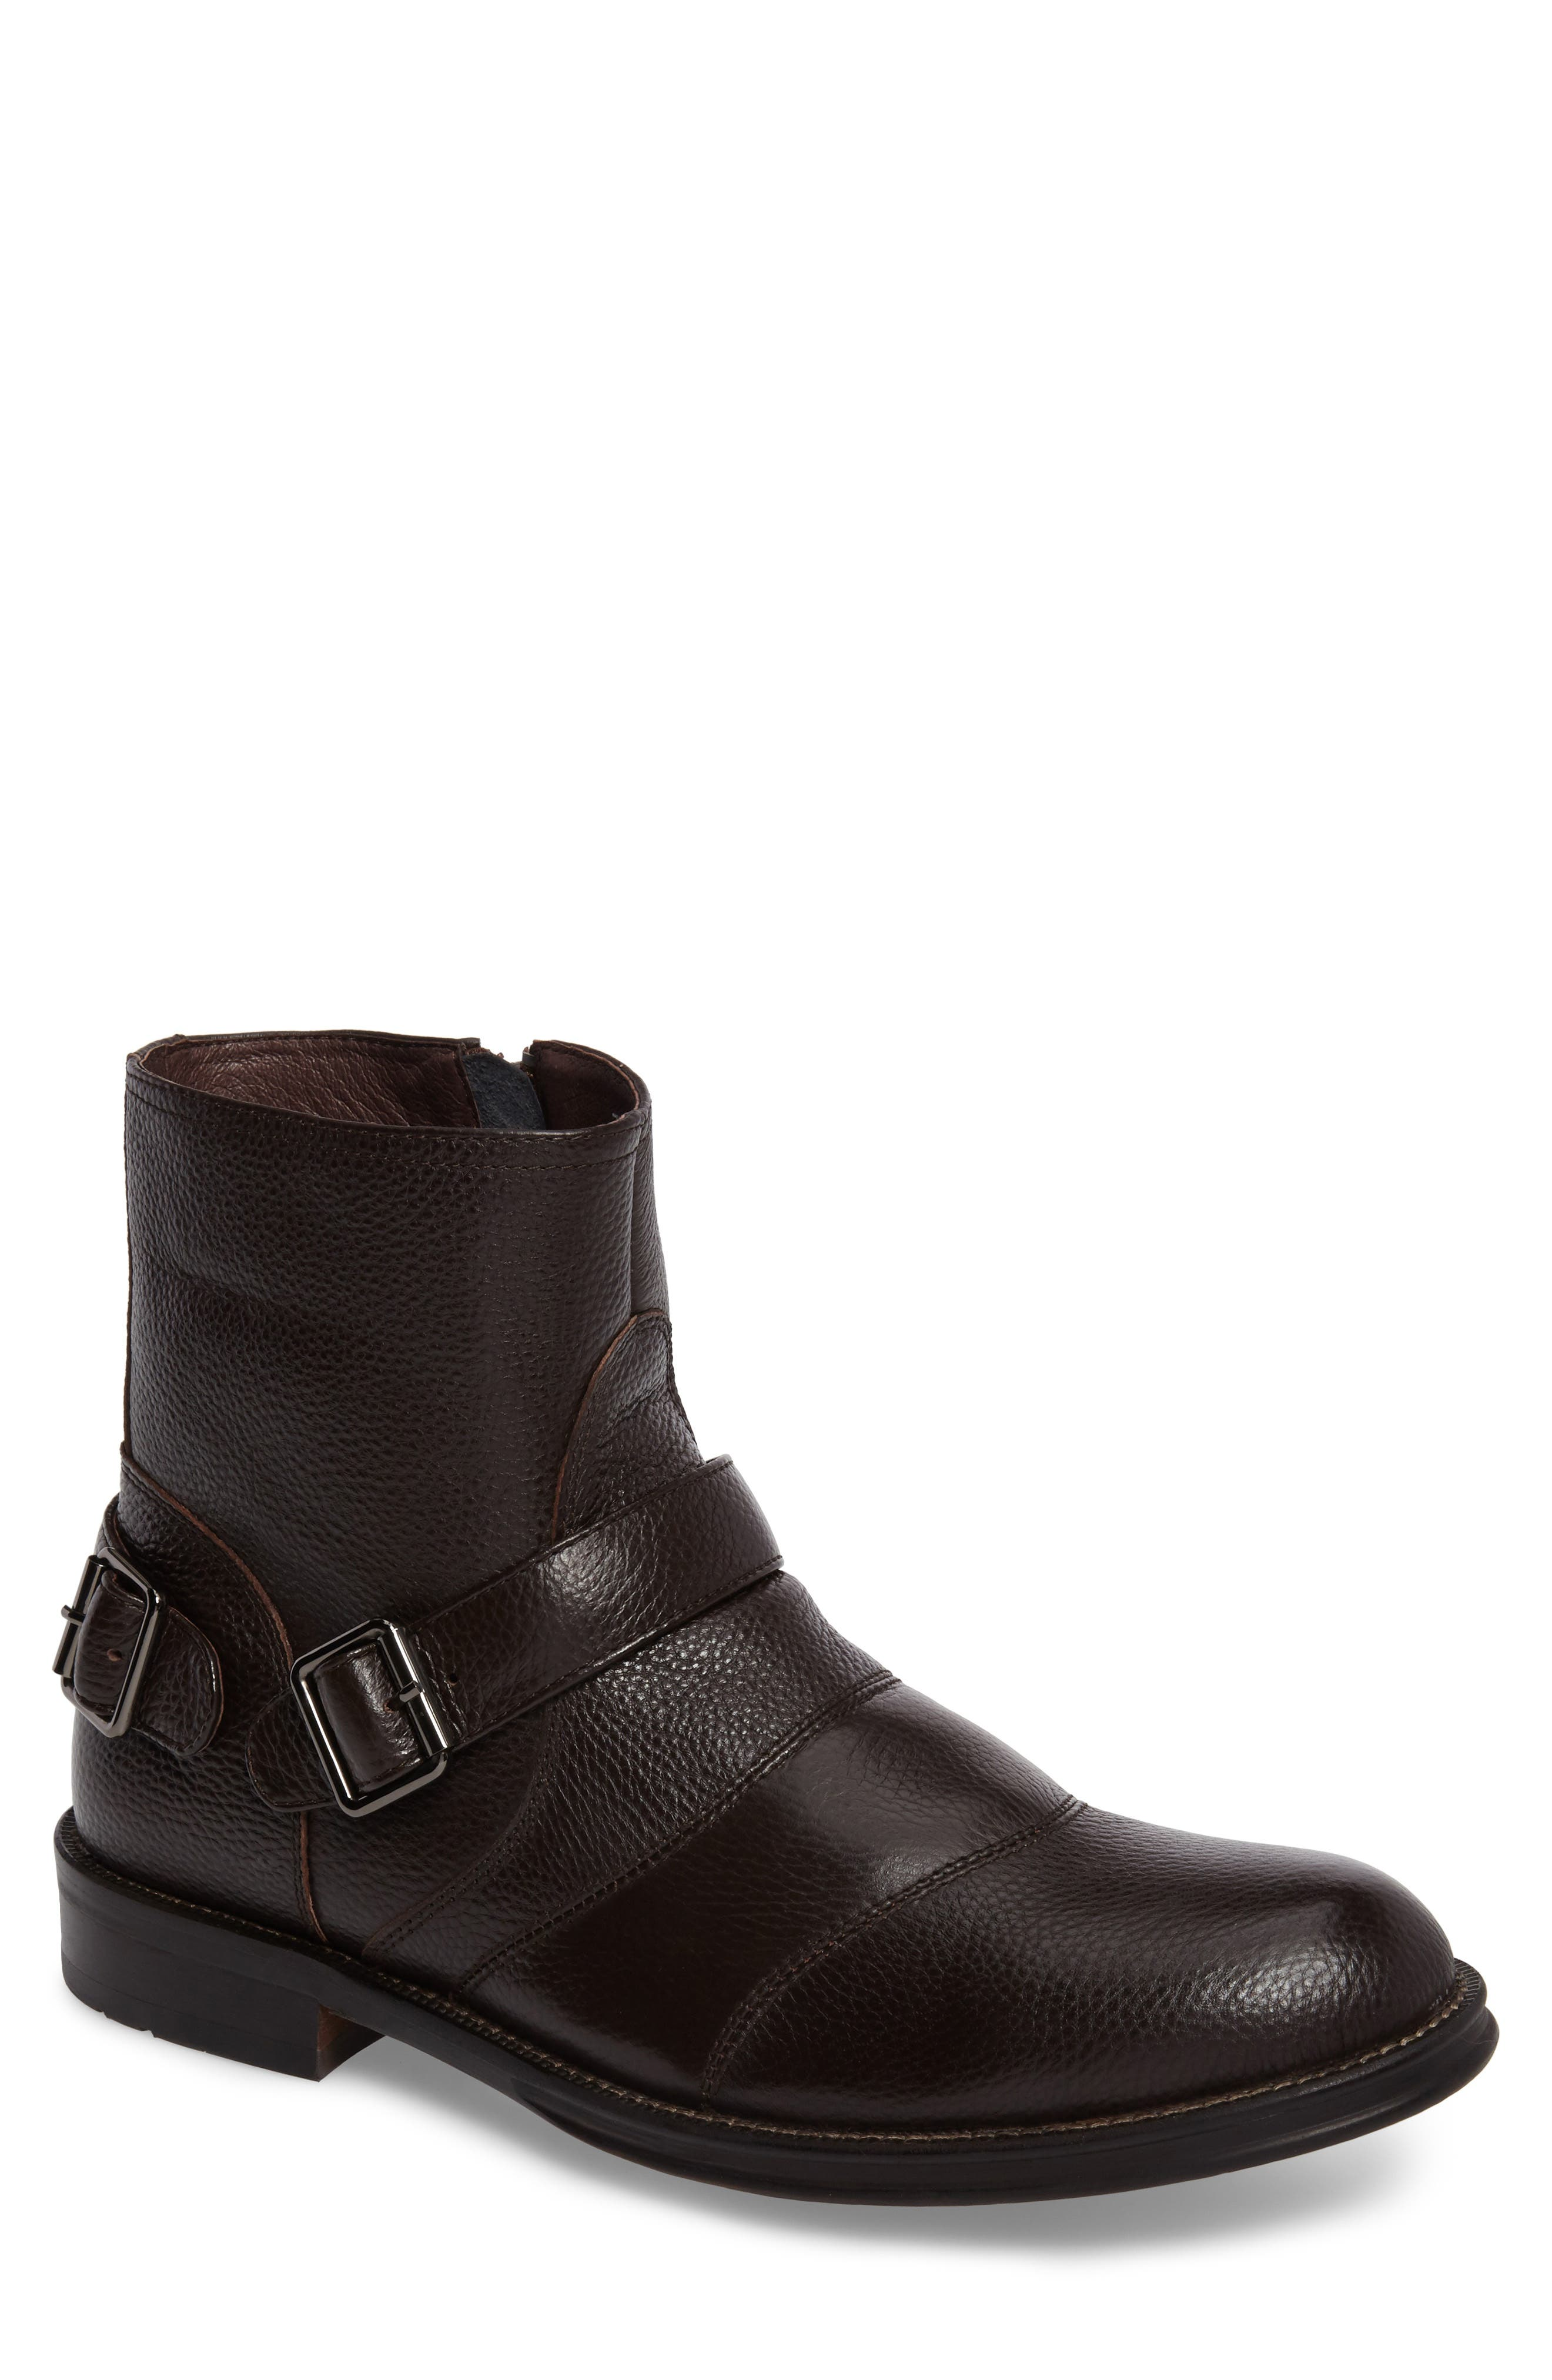 Howson Buckle Strap Boot,                         Main,                         color, Brown Leather